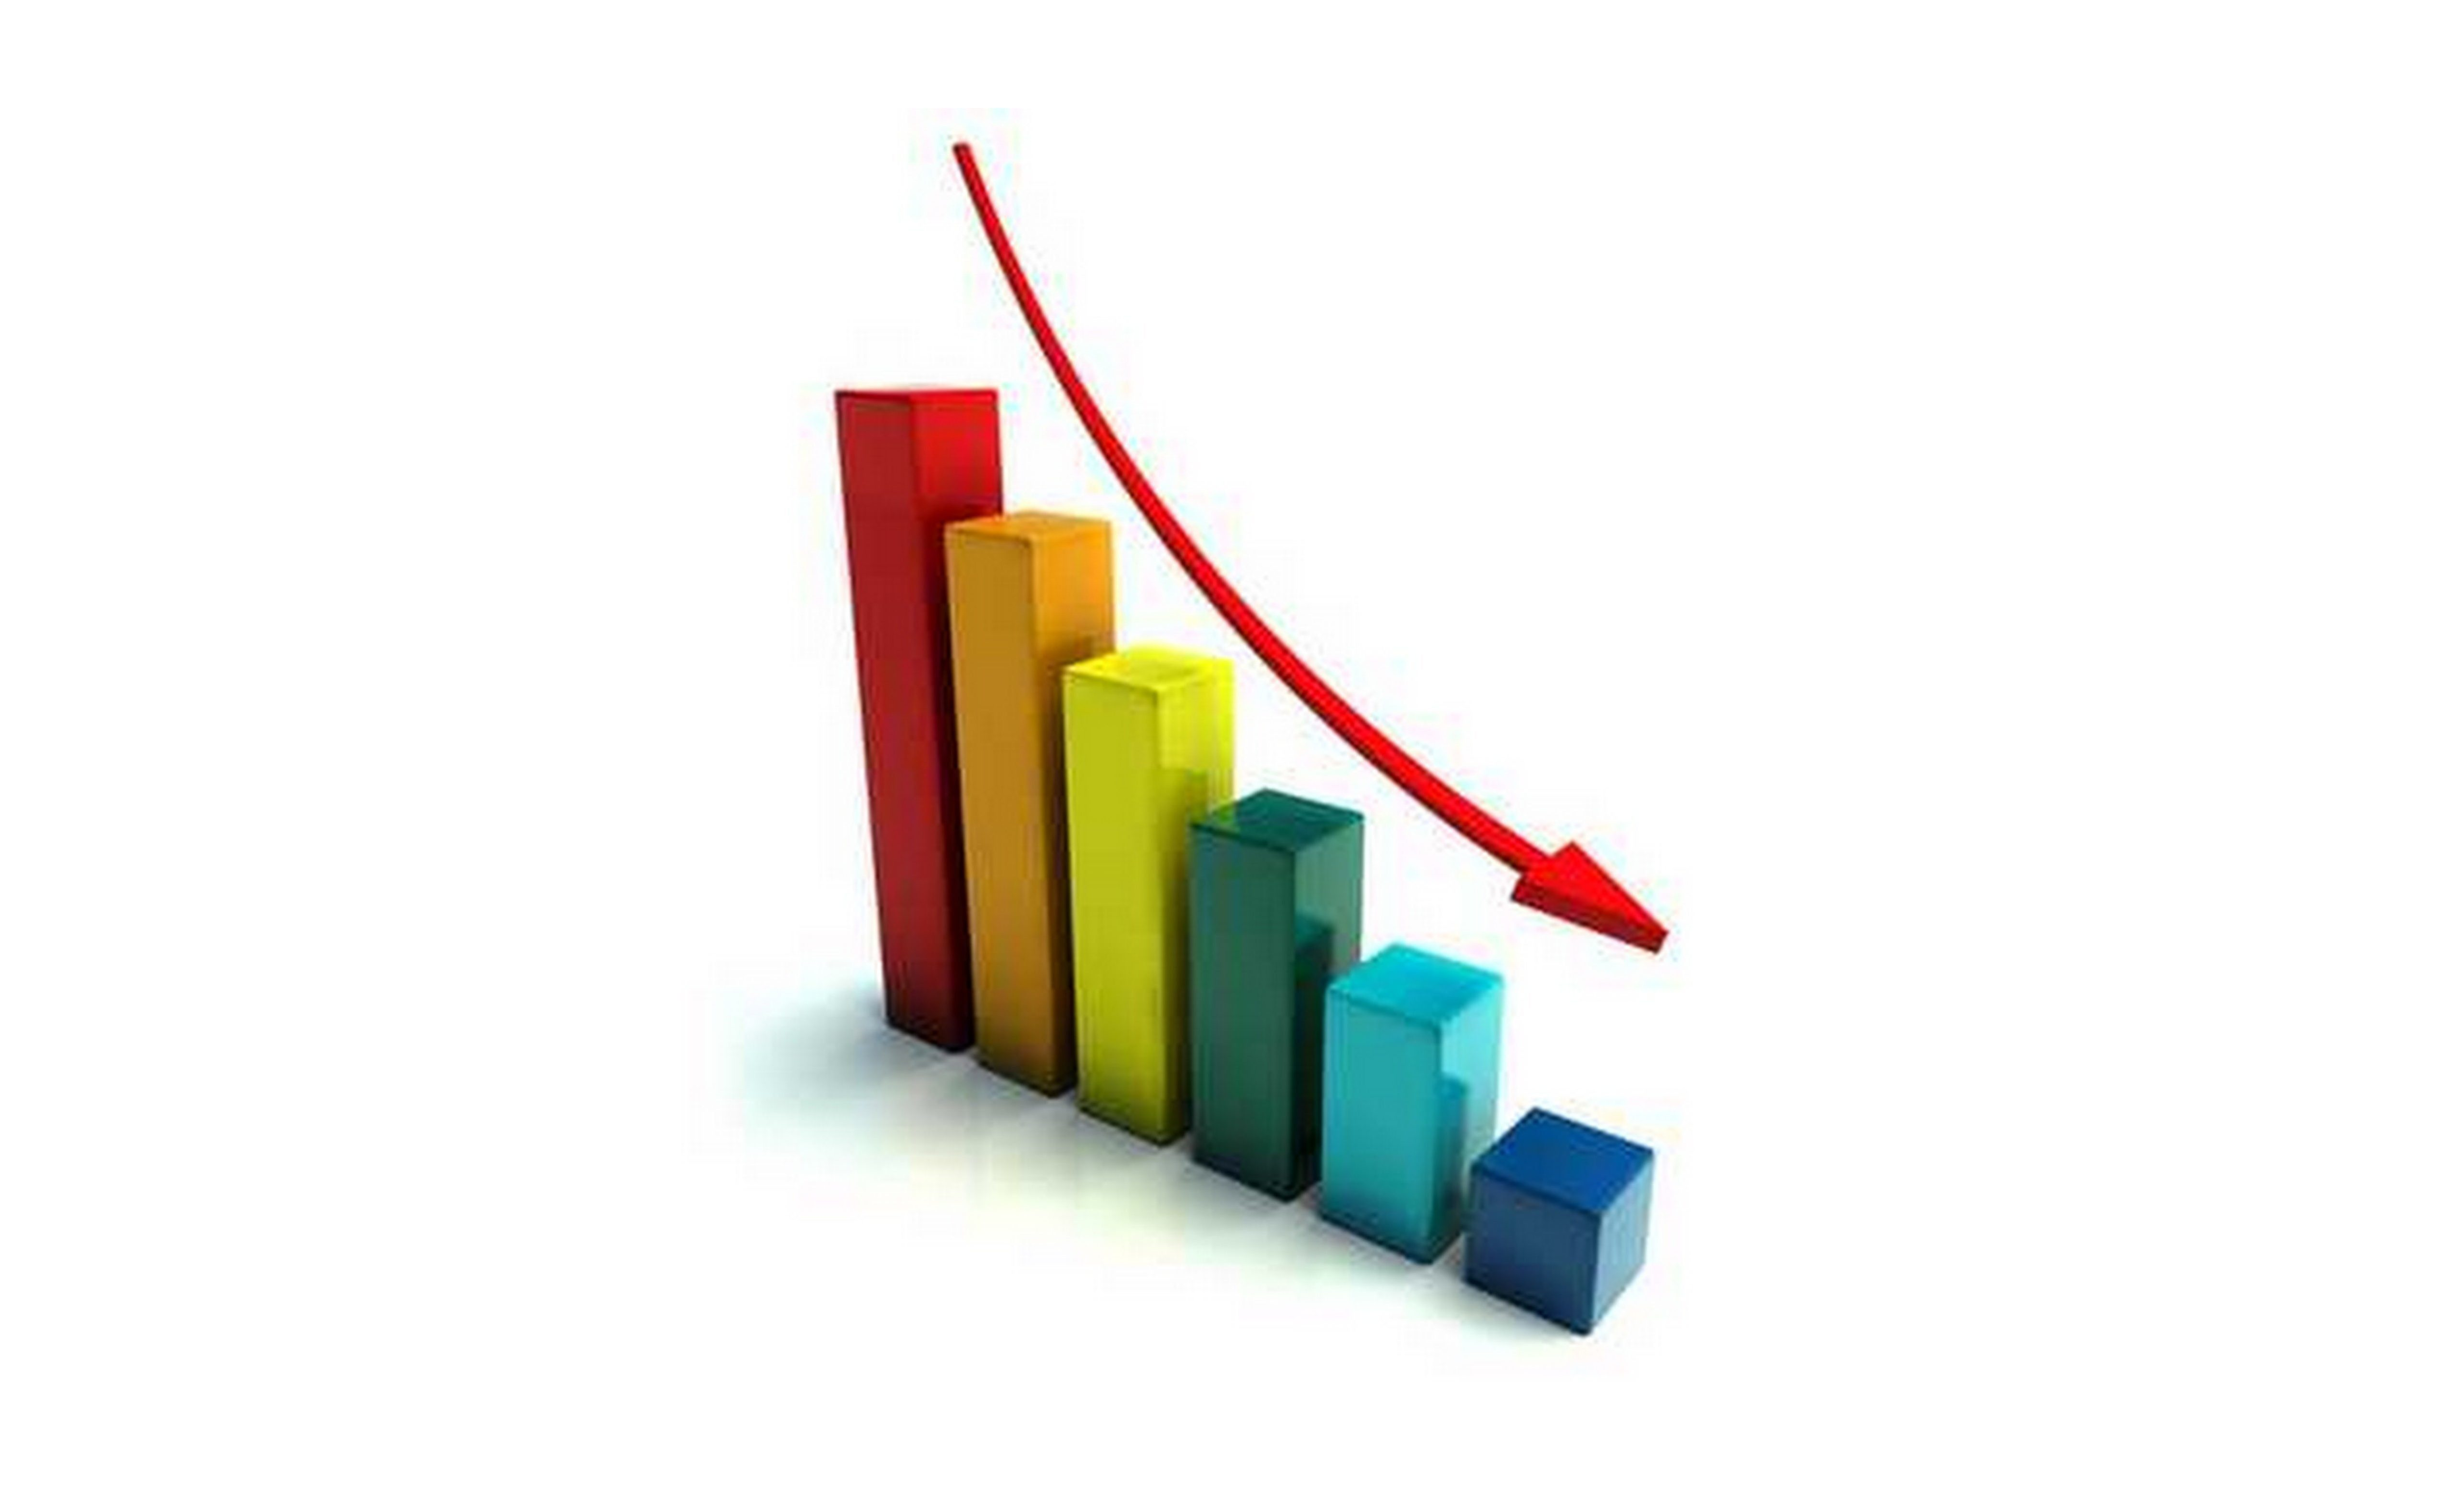 falling gdp e1464004325165 - Falling GDP, MPC meeting'll strain market - Analysts